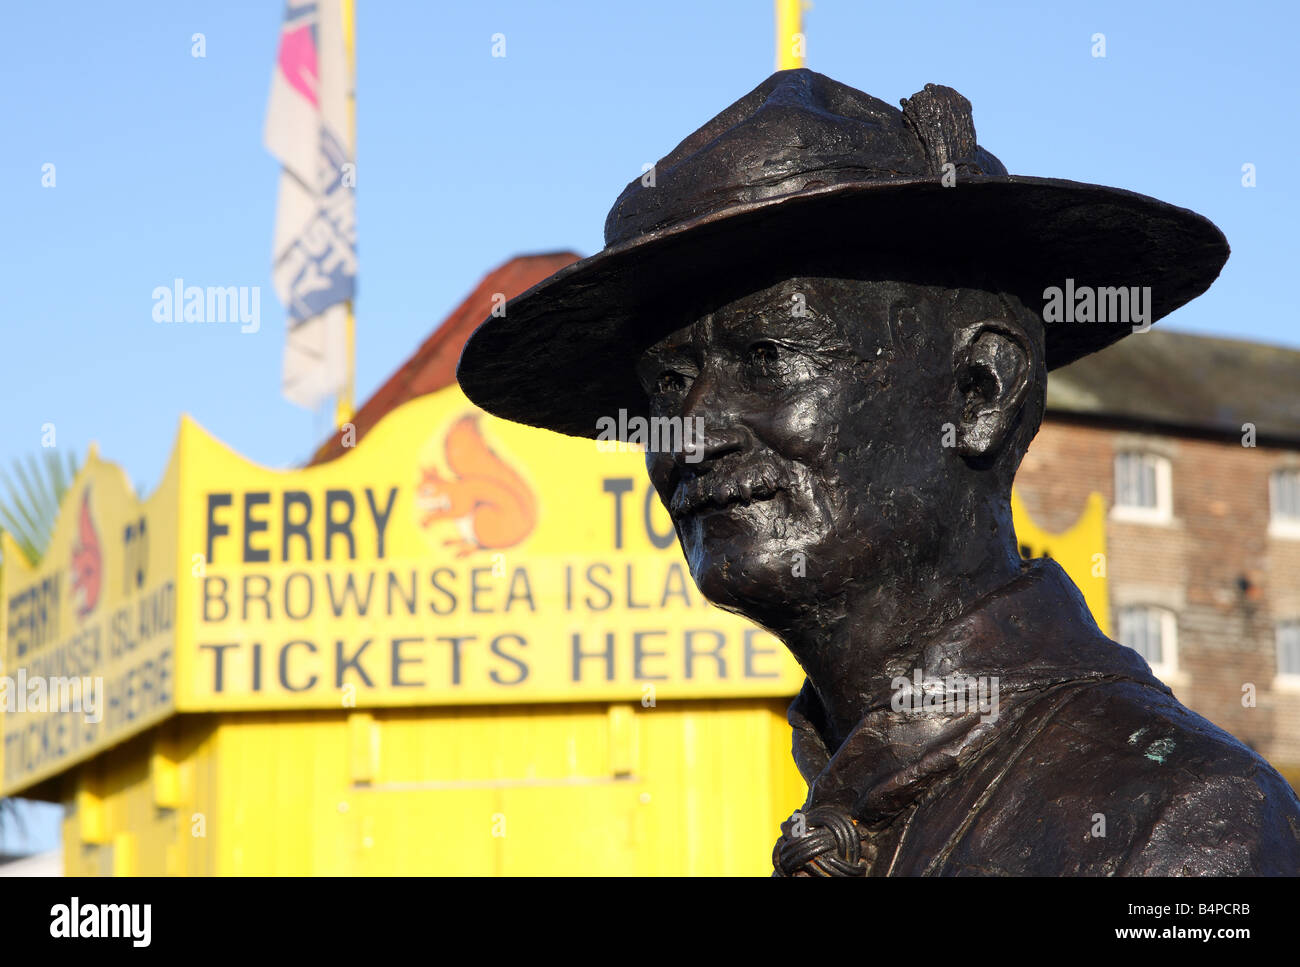 The statue of Robert Baden Powell, founder of the Scouting movement, in Poole harbour in England - Stock Image